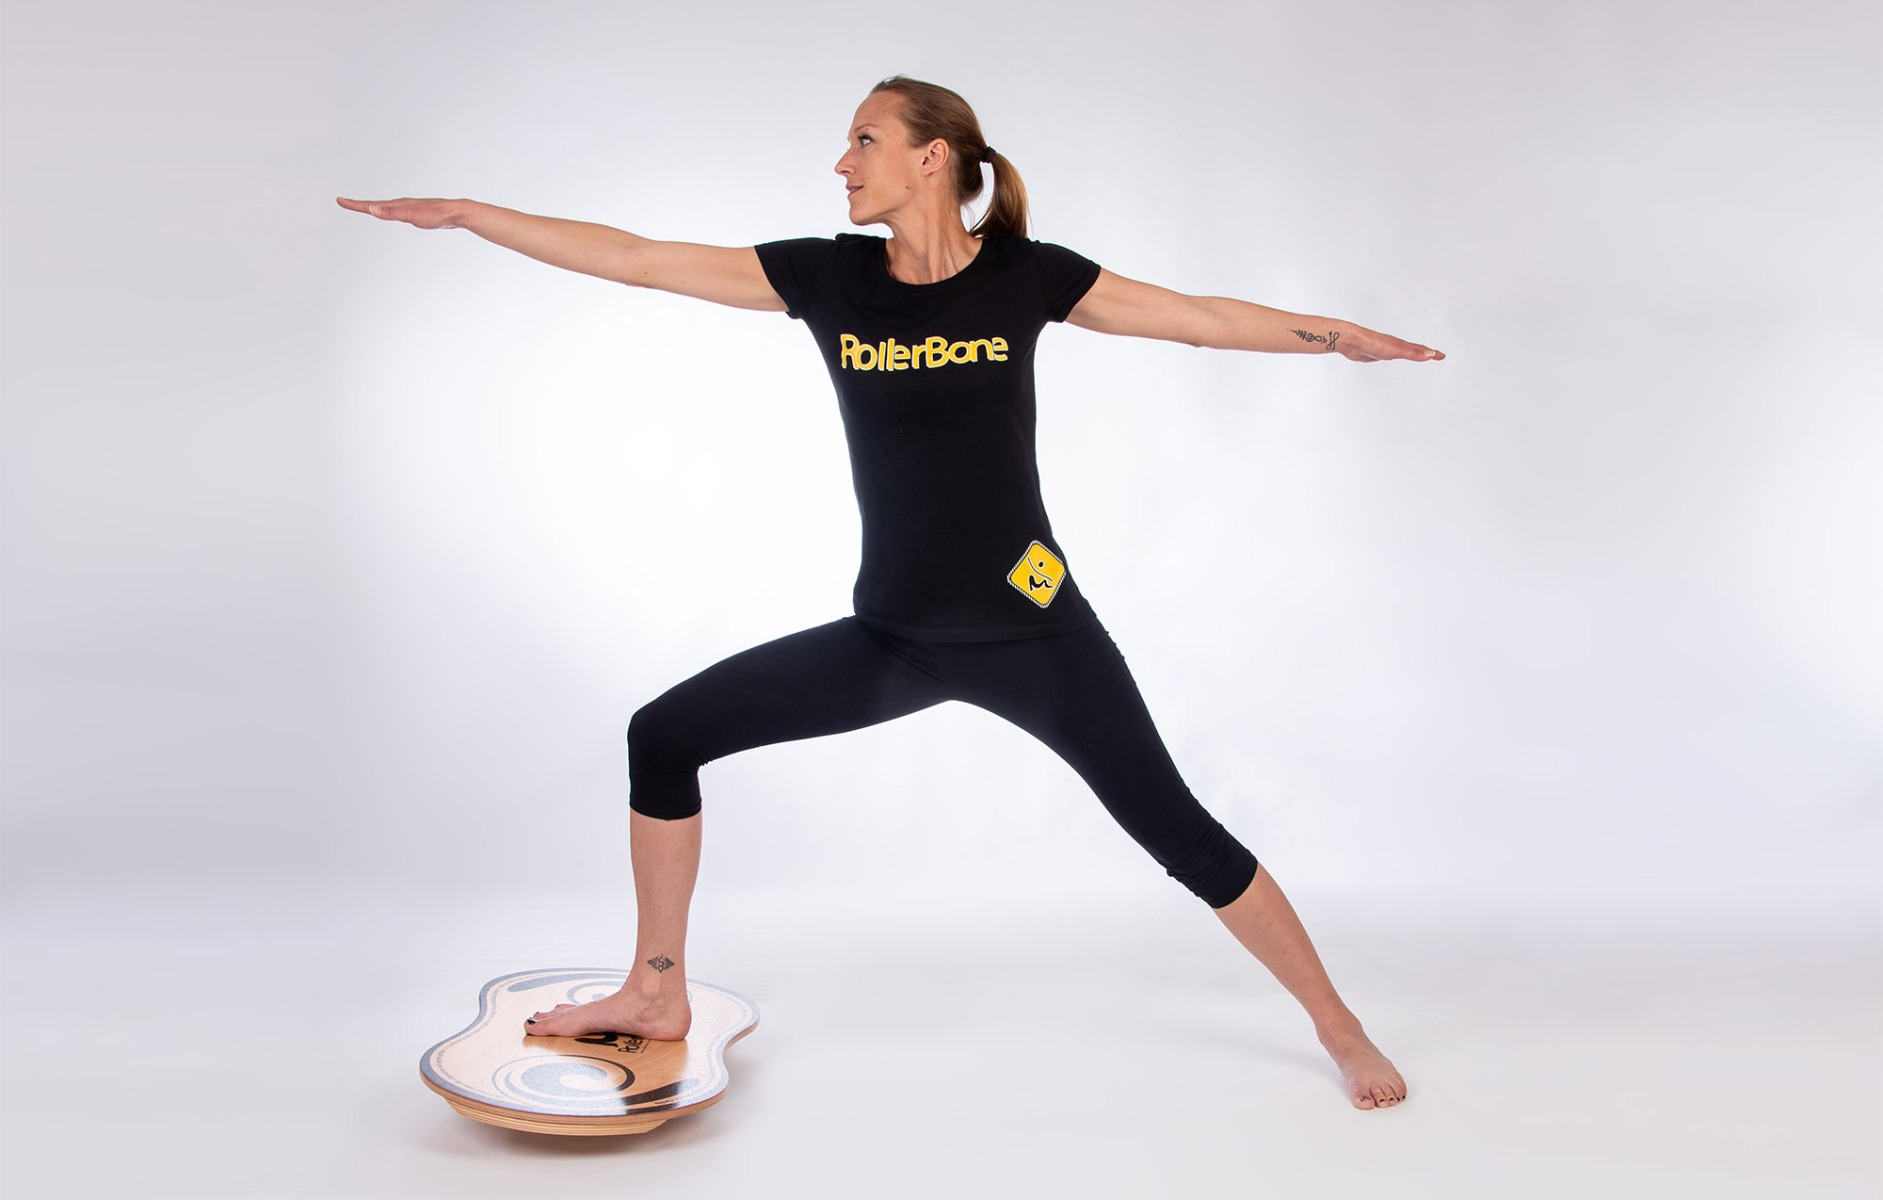 Rollerbone Yoga, Training Balance Board